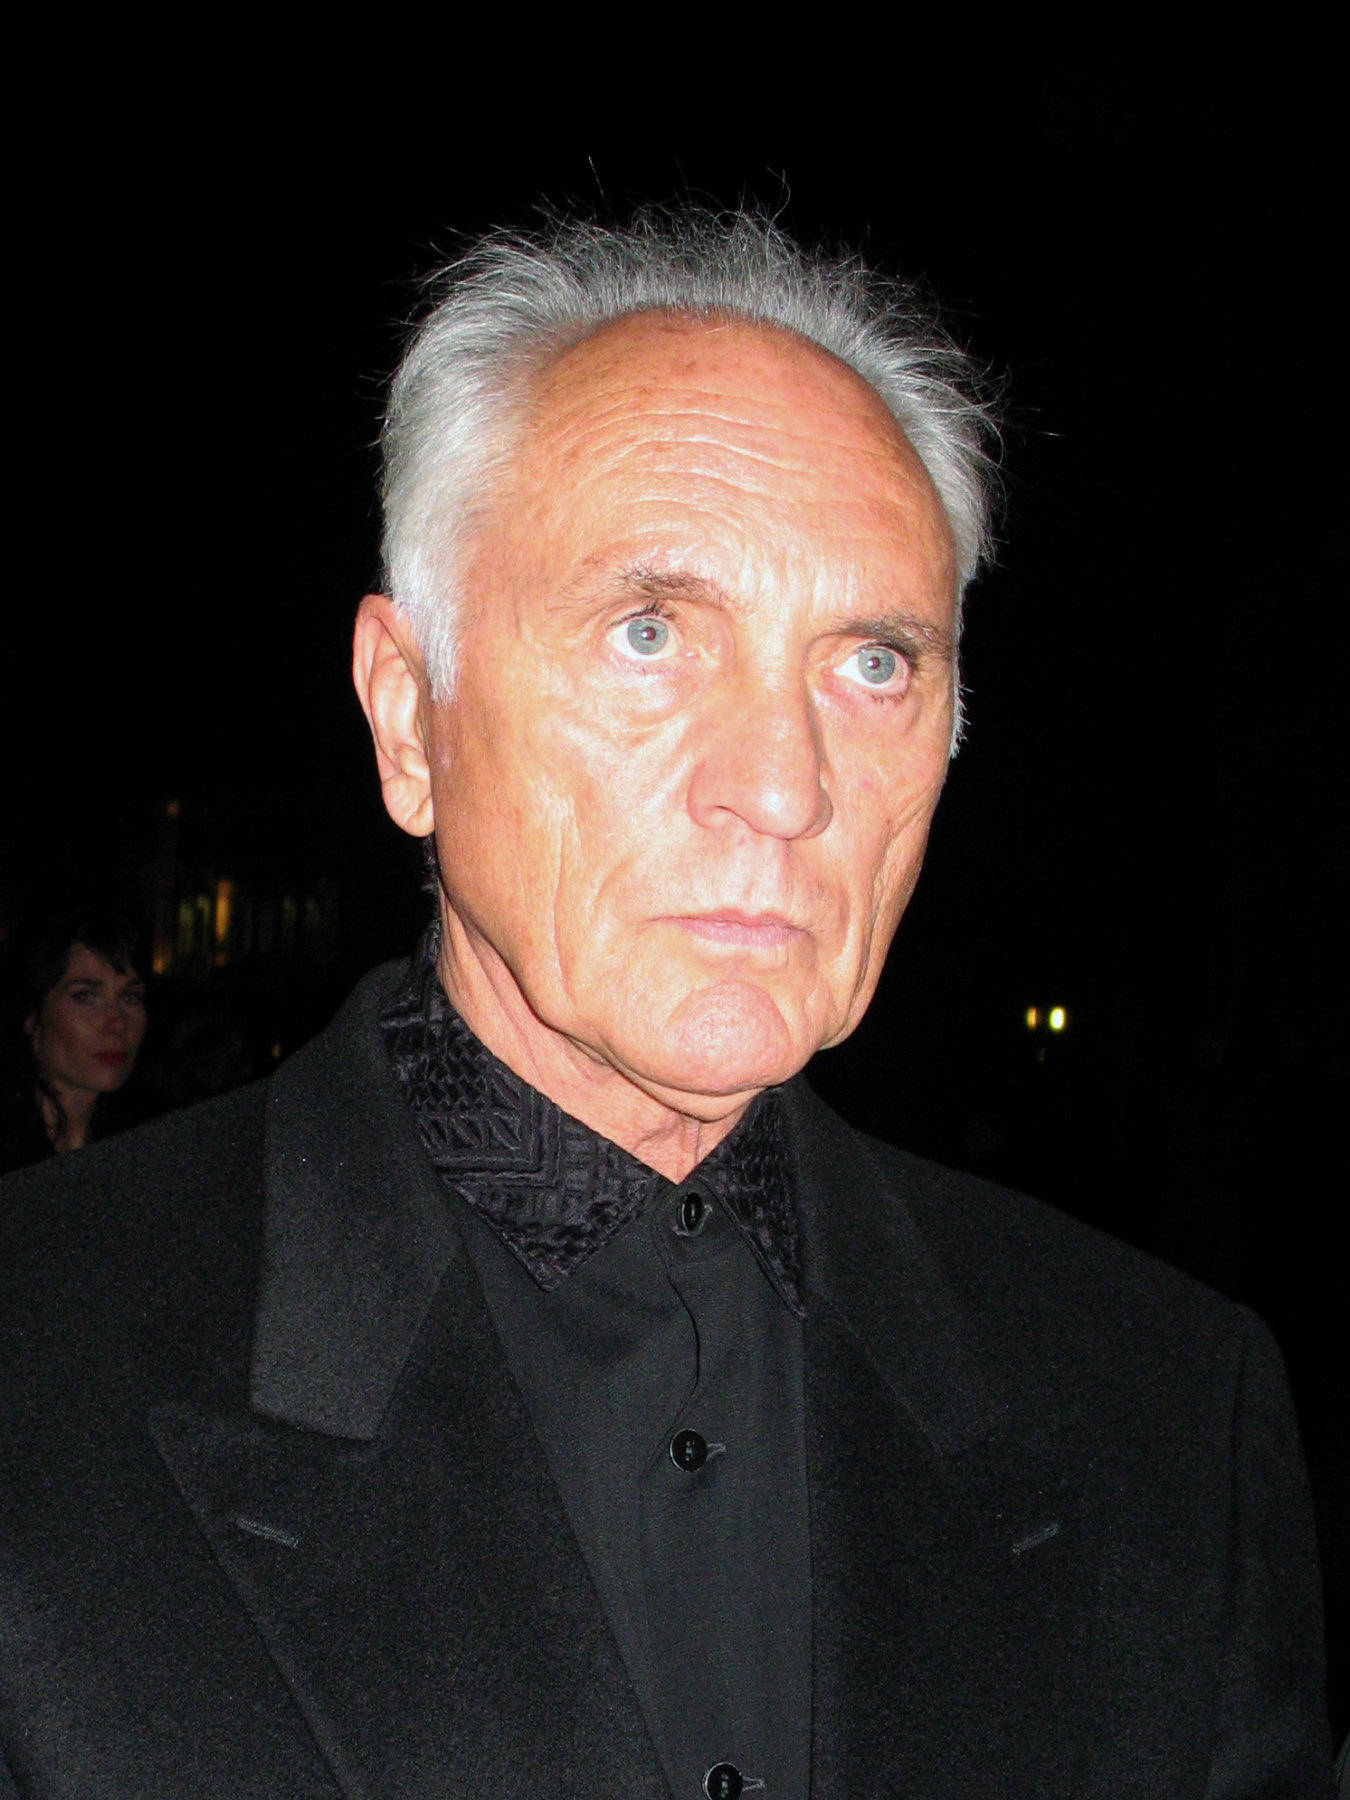 terence stamp malcolm mcdowellterence stamp movies, terence stamp imdb, terence stamp star wars, terence stamp young, terence stamp net worth, terence stamp julie christie, terence stamp malcolm mcdowell, terence stamp destiny, terence stamp billy budd, terence stamp far from the madding crowd, terence stamp haunted mansion, terence stamp smallville, terence stamp superman ii, terence stamp star wars 1, terence stamp interview, terence stamp 2015, terence stamp height, terence stamp oblivion, terence stamp photos, terence stamp michael caine